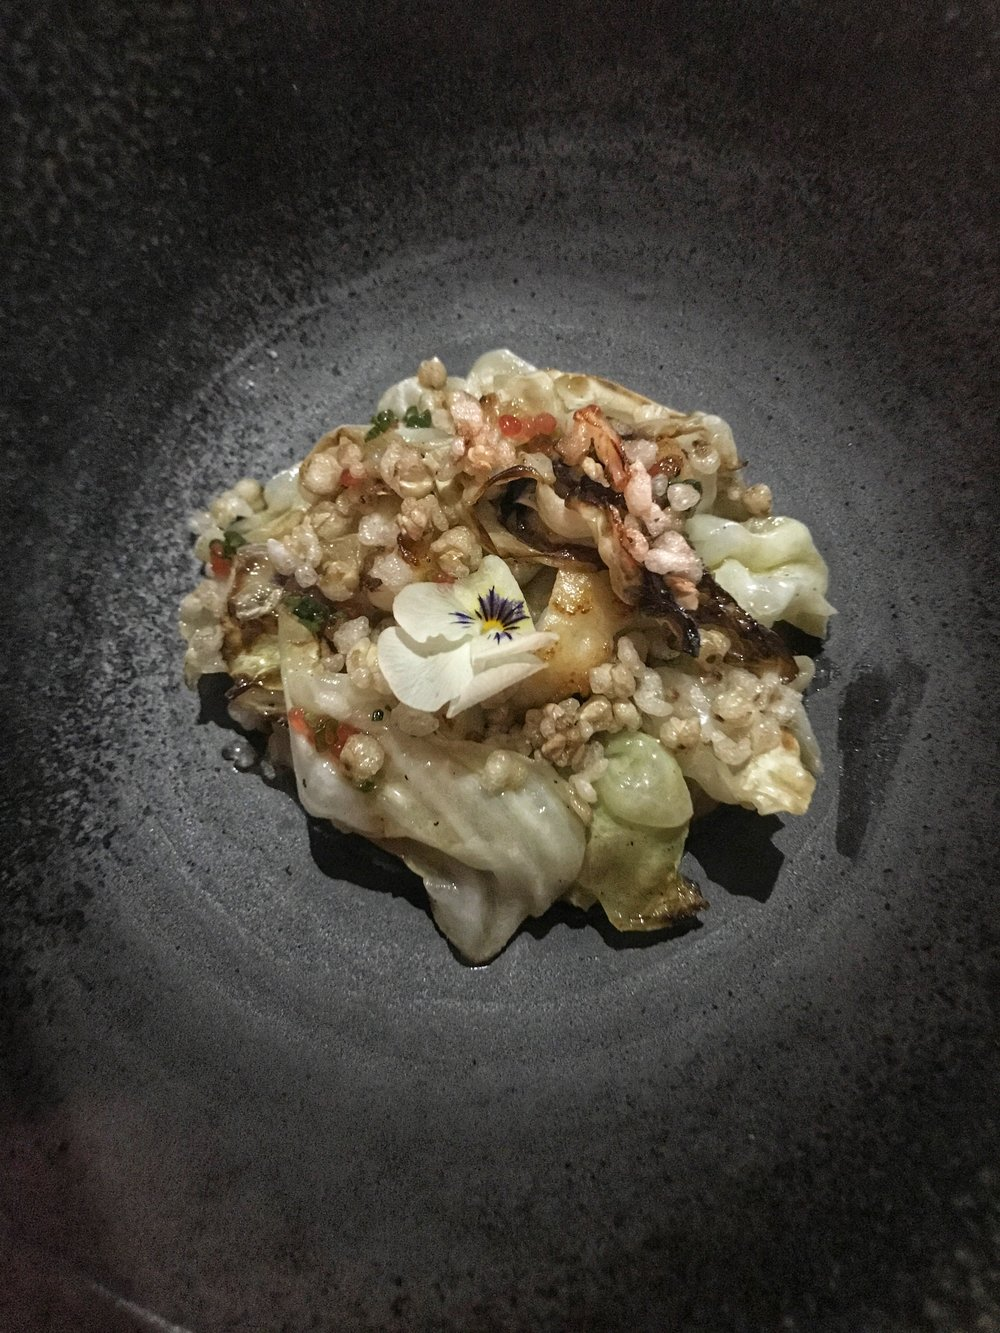 Princess Charlotte Bay bug dumpling with hispi cabbage, buckwheat, finger lime, nori and brown butter.